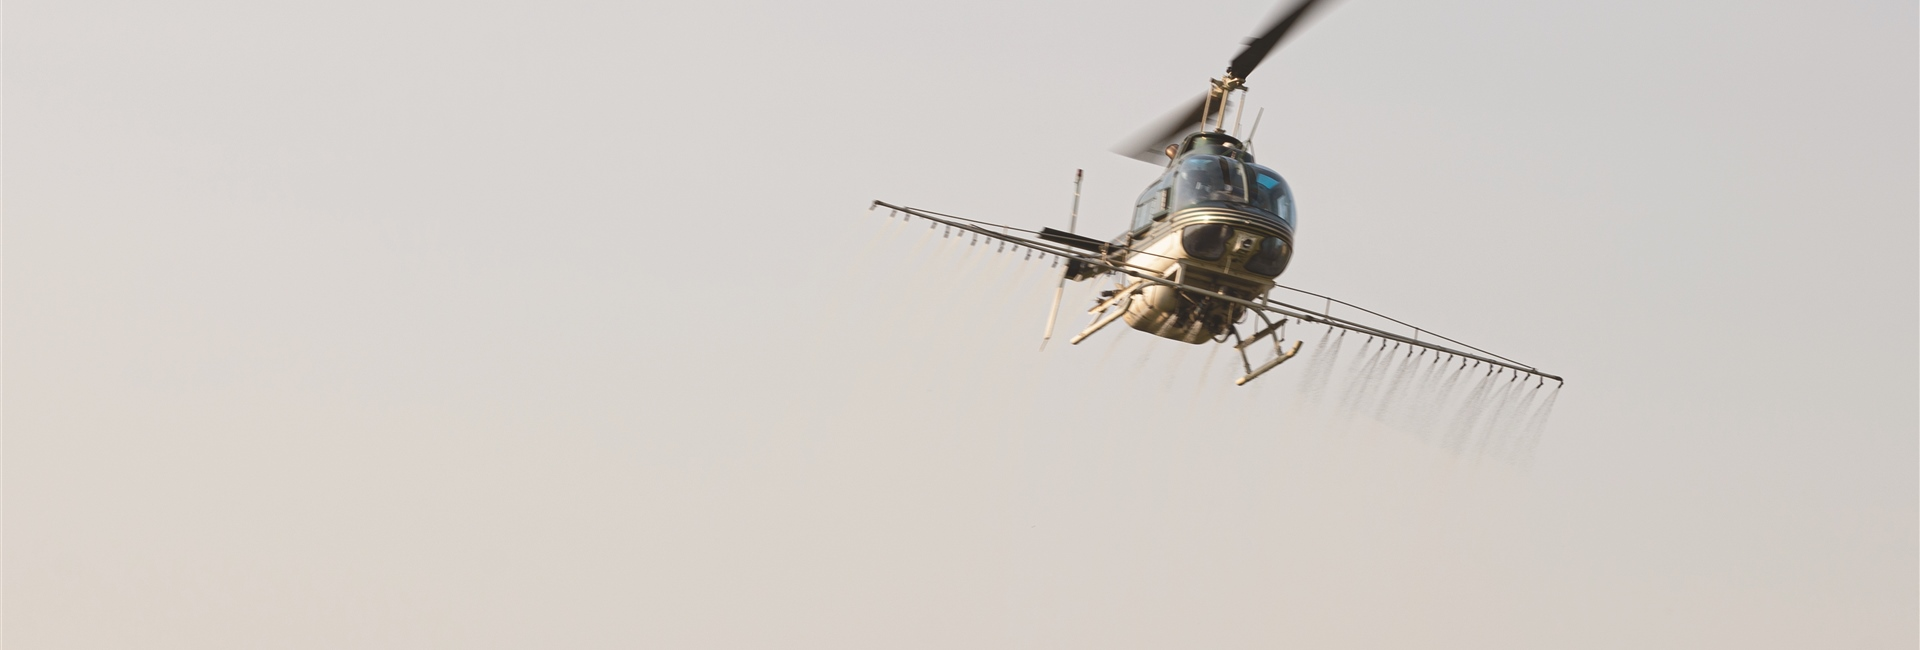 Read about the Helicopter Spraying for Phragmites Along the River